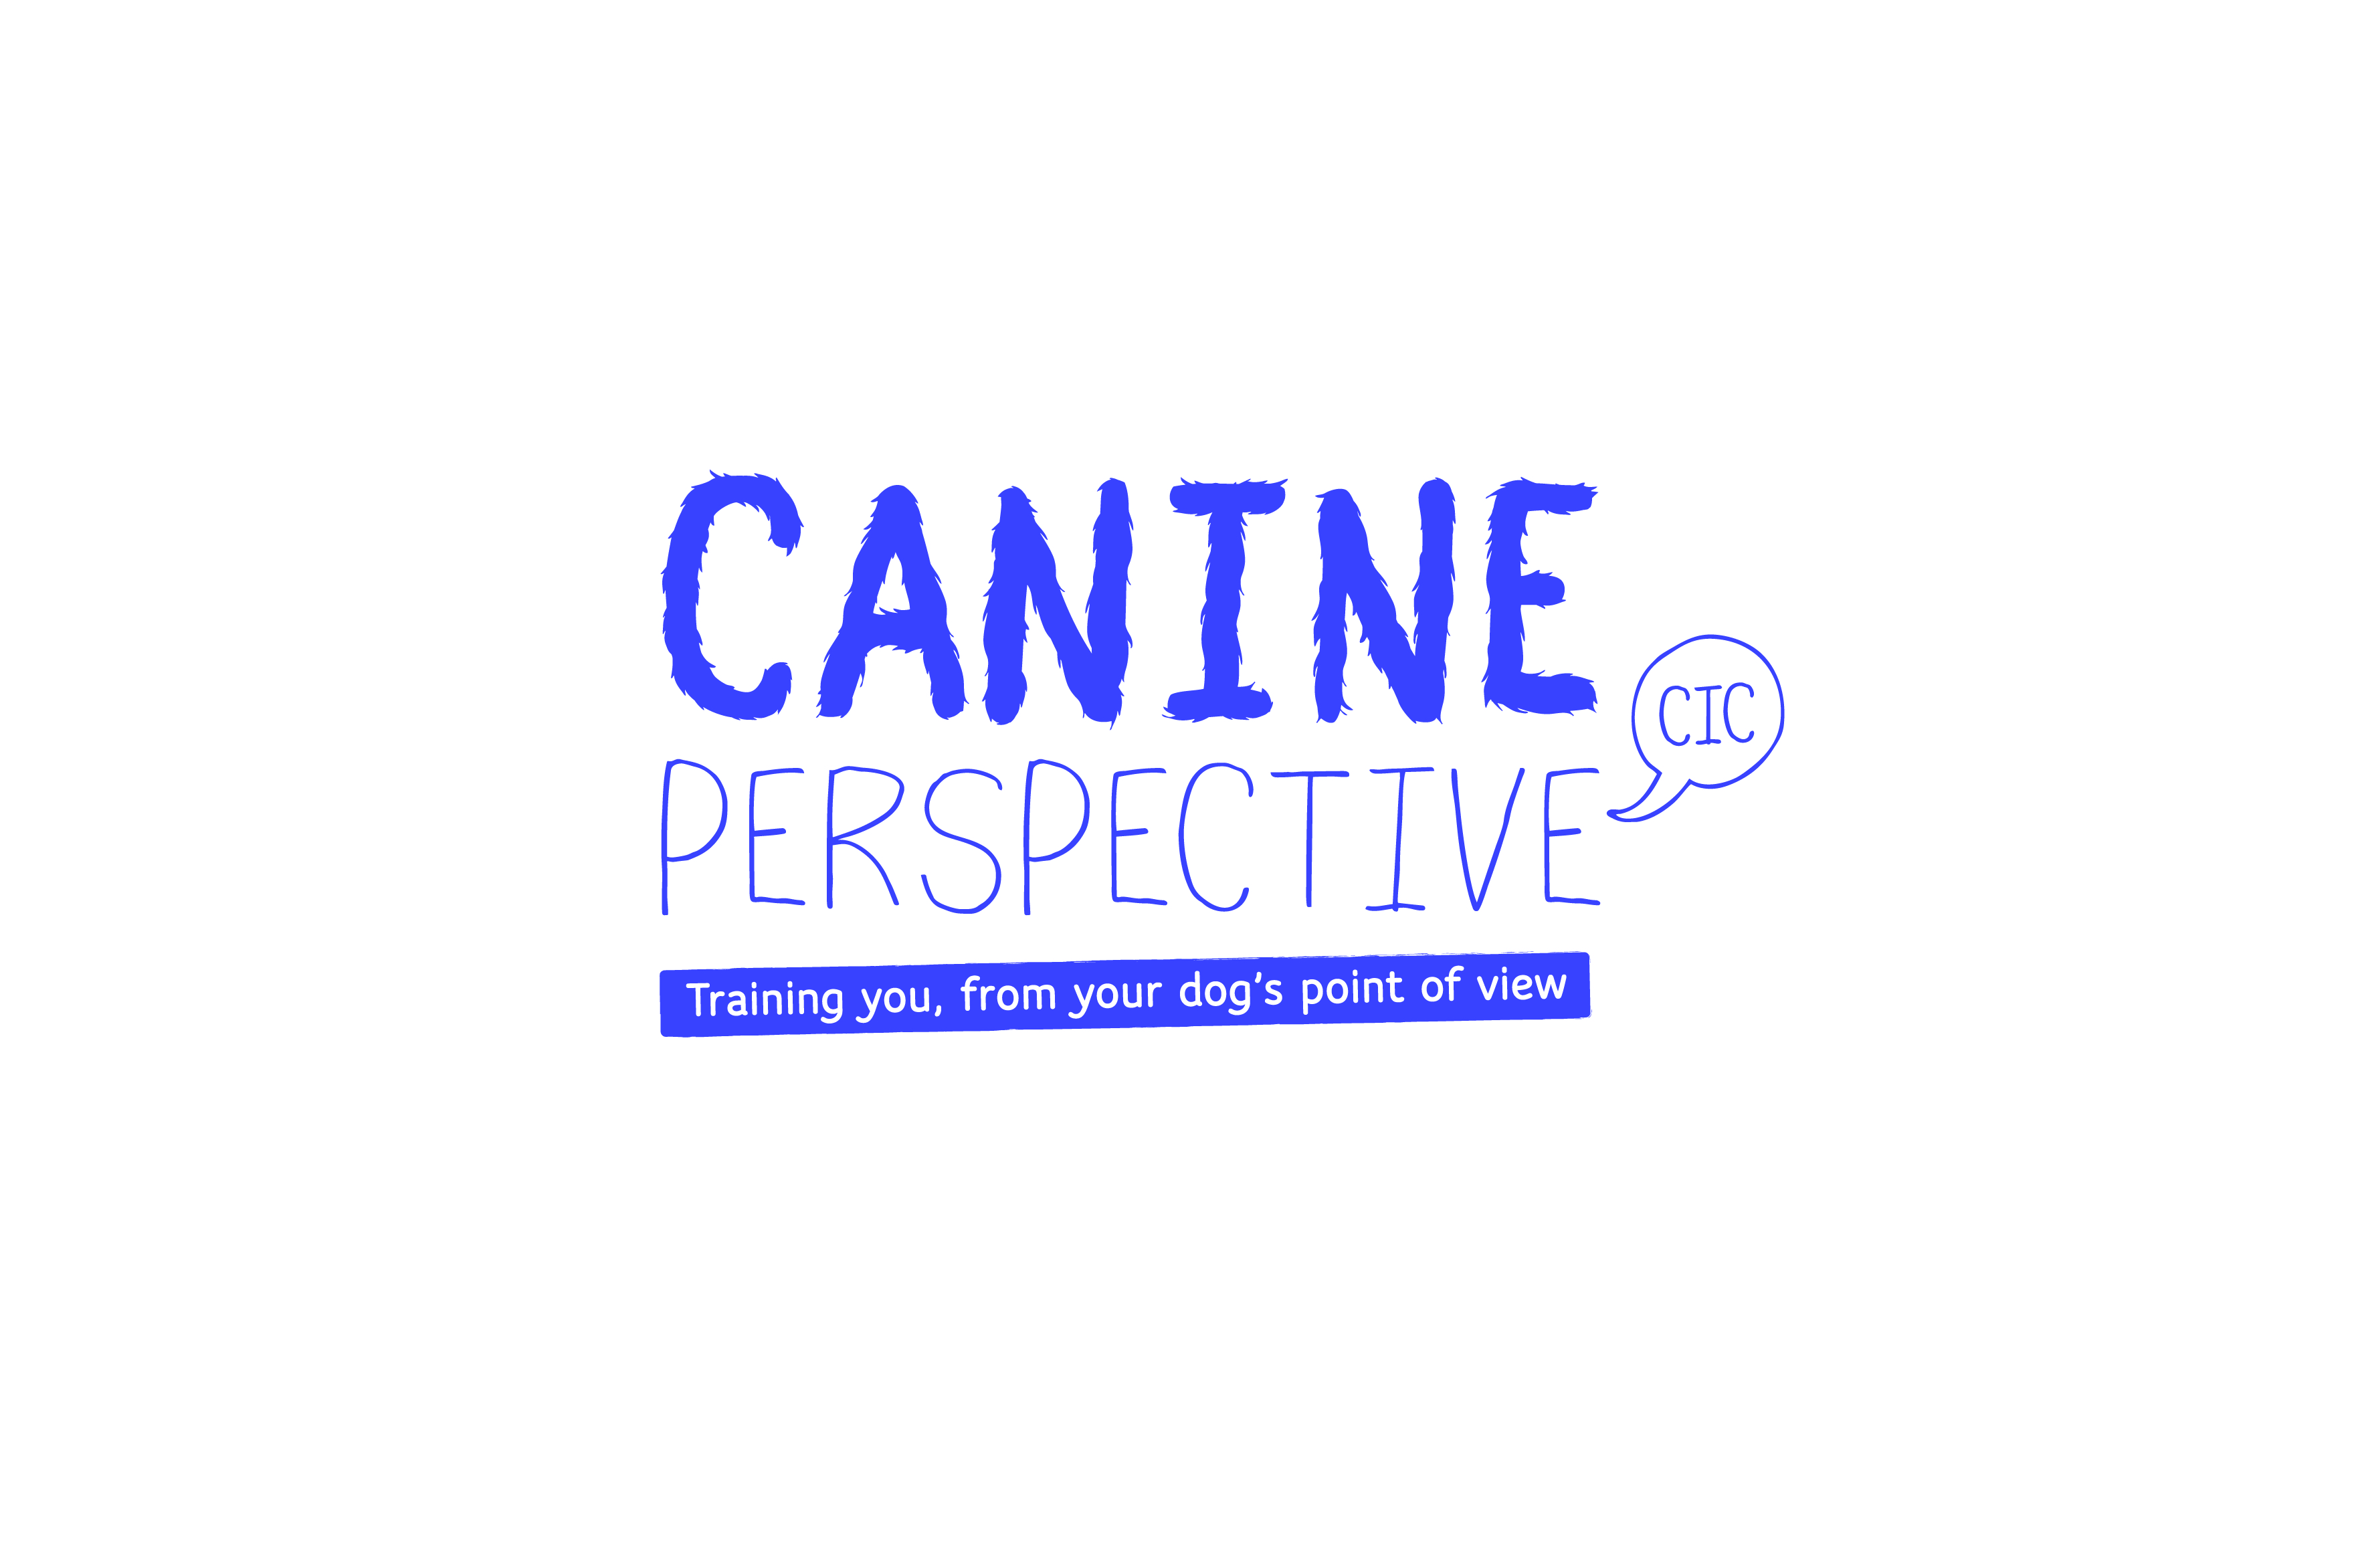 Canine Perspective CIC